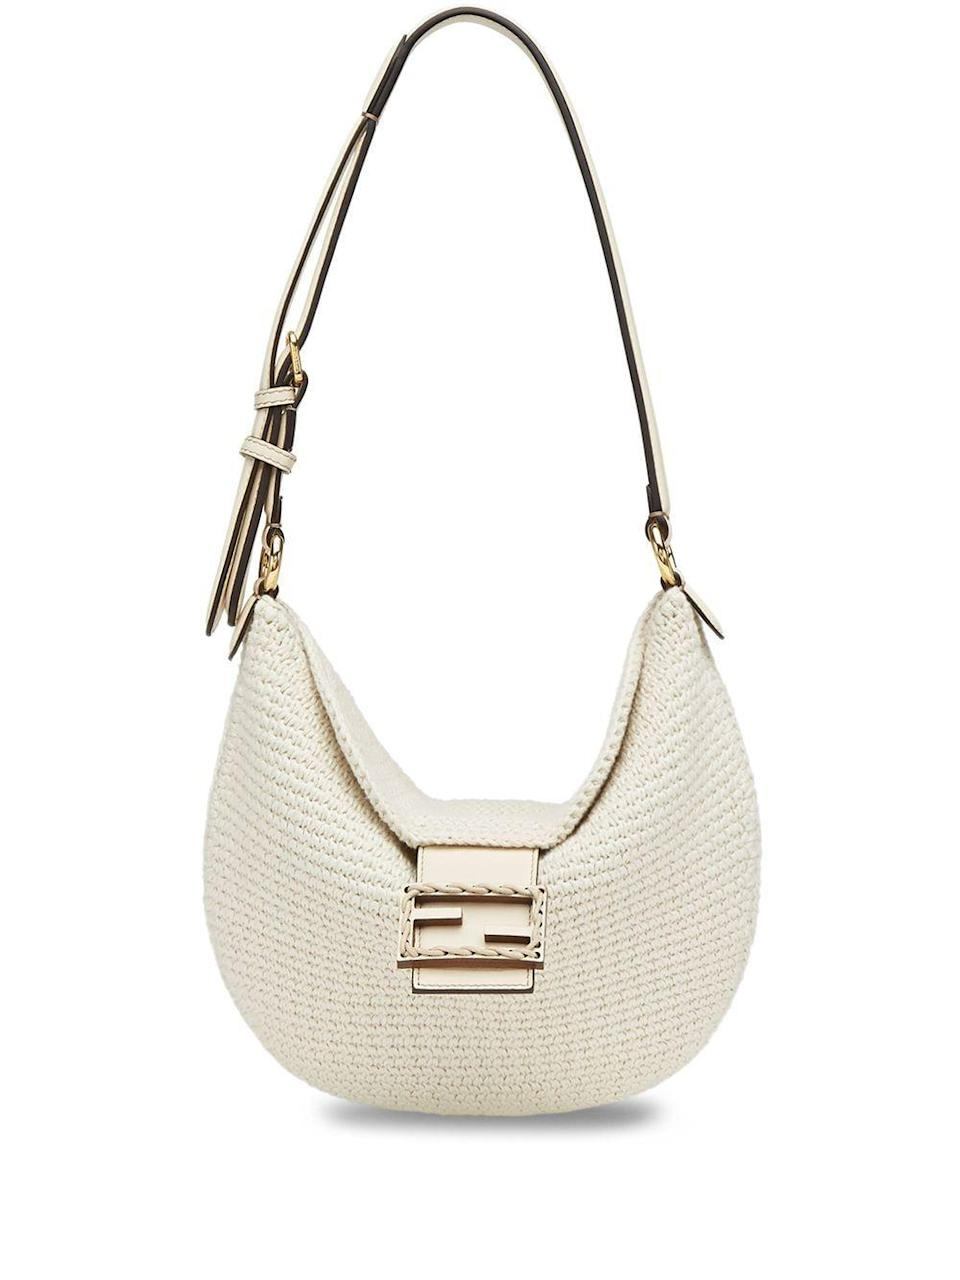 """<p><strong>Fendi</strong></p><p>farfetch.com</p><p><strong>$2290.00</strong></p><p><a href=""""https://go.redirectingat.com?id=74968X1596630&url=https%3A%2F%2Fwww.farfetch.com%2Fshopping%2Fwomen%2Ffendi-small-croissant-shoulder-bag-item-16369621.aspx&sref=https%3A%2F%2Fwww.harpersbazaar.com%2Ffashion%2Ftrends%2Fg24061584%2Fbest-gifts-for-friends-ideas%2F"""" rel=""""nofollow noopener"""" target=""""_blank"""" data-ylk=""""slk:Shop Now"""" class=""""link rapid-noclick-resp"""">Shop Now</a></p><p>She's had her eye on this one long enough.</p>"""